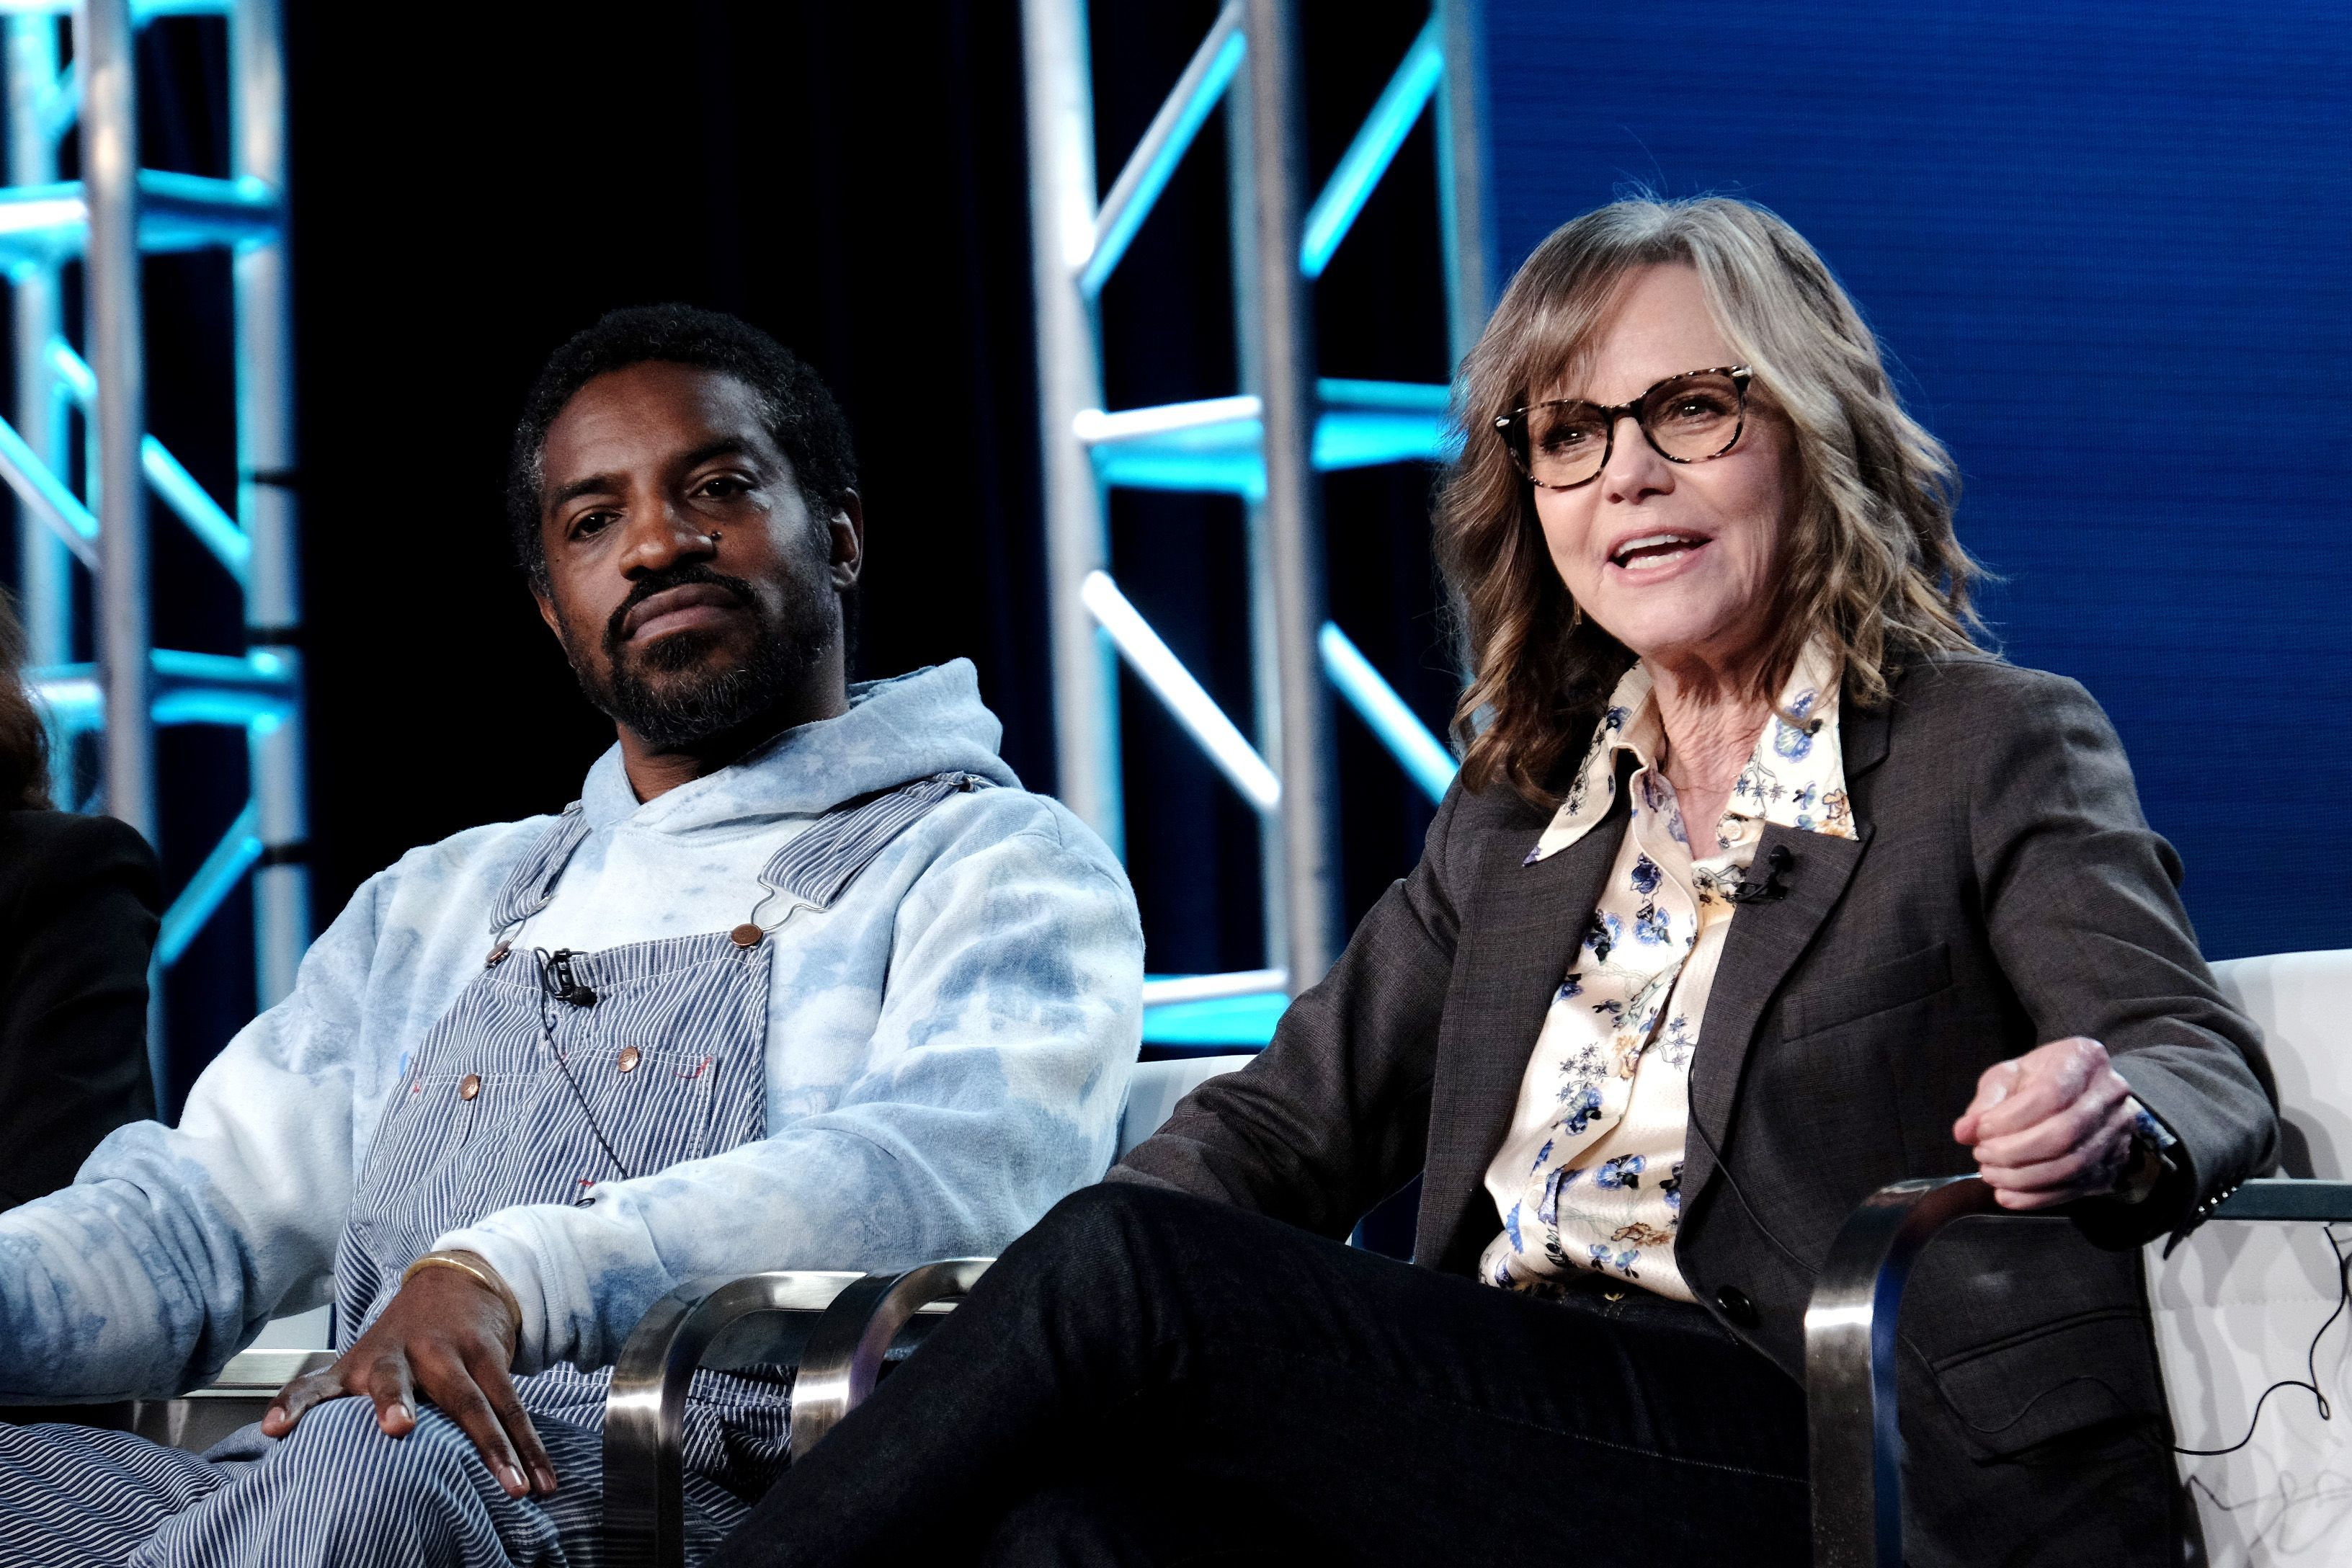 Andre 3000 and Sally Field